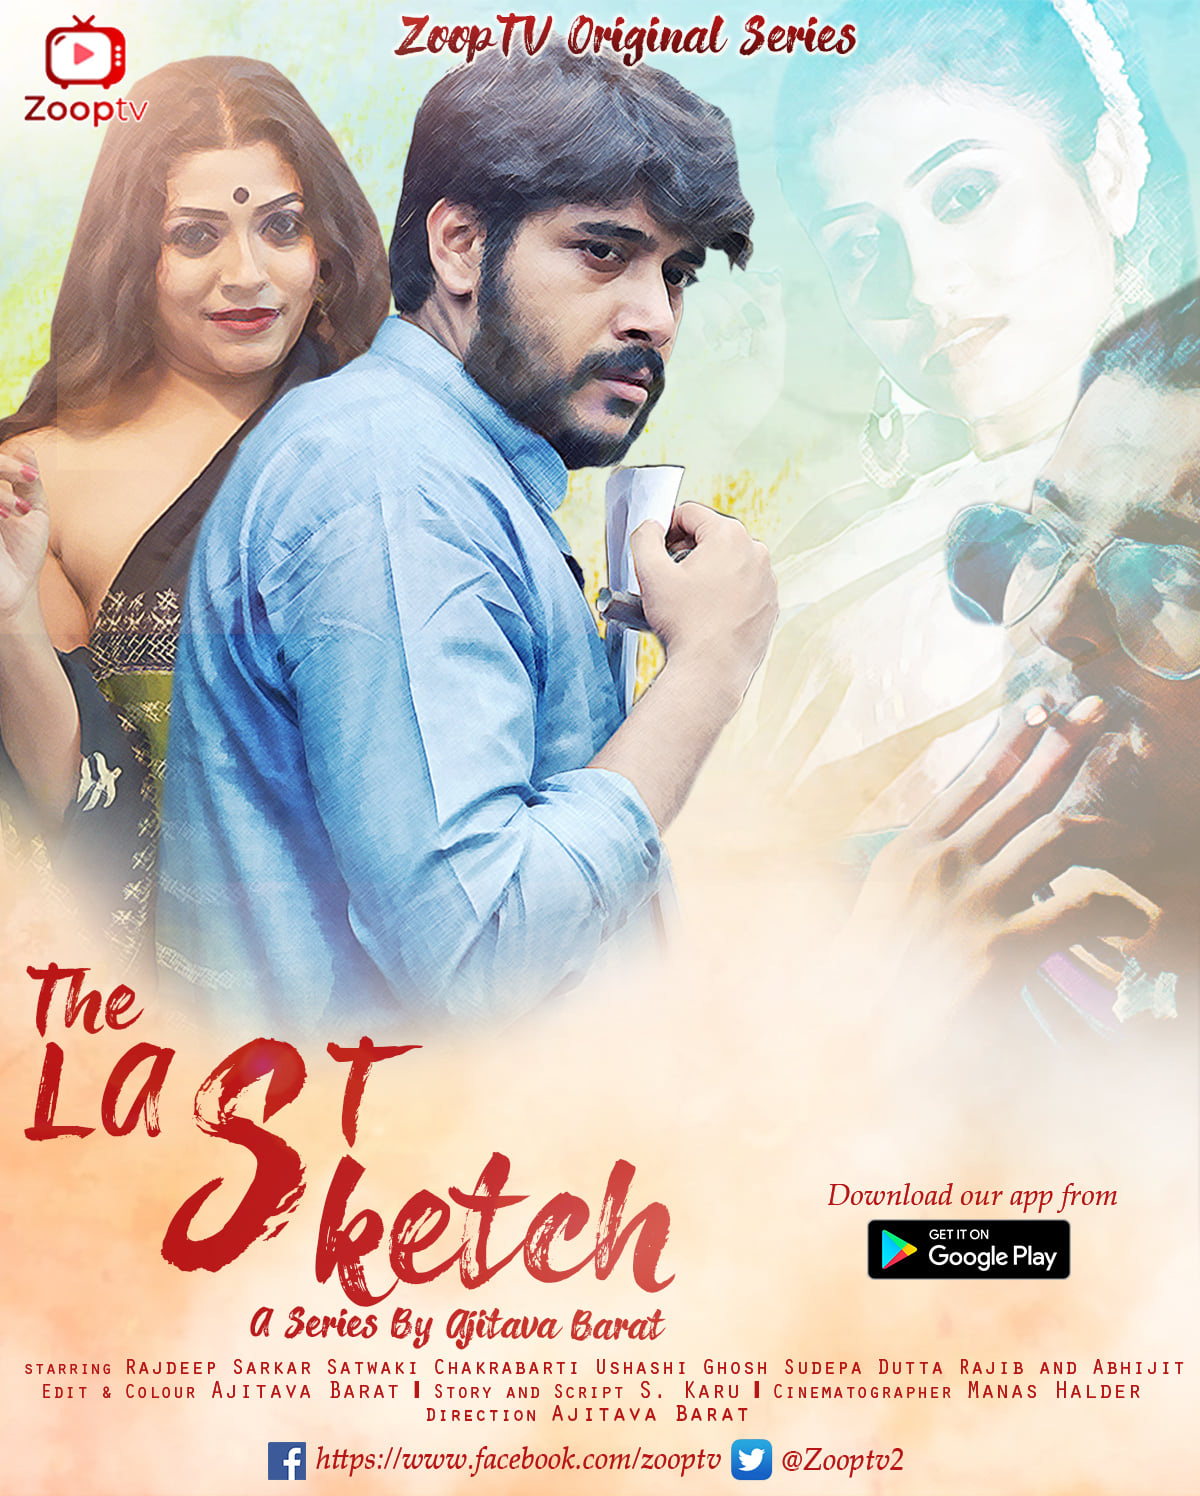 18+ The Last Sketch 2021 S01 Hindi Complete Zooptv Web Series 720p HDRip 300MB Watch Online and Download